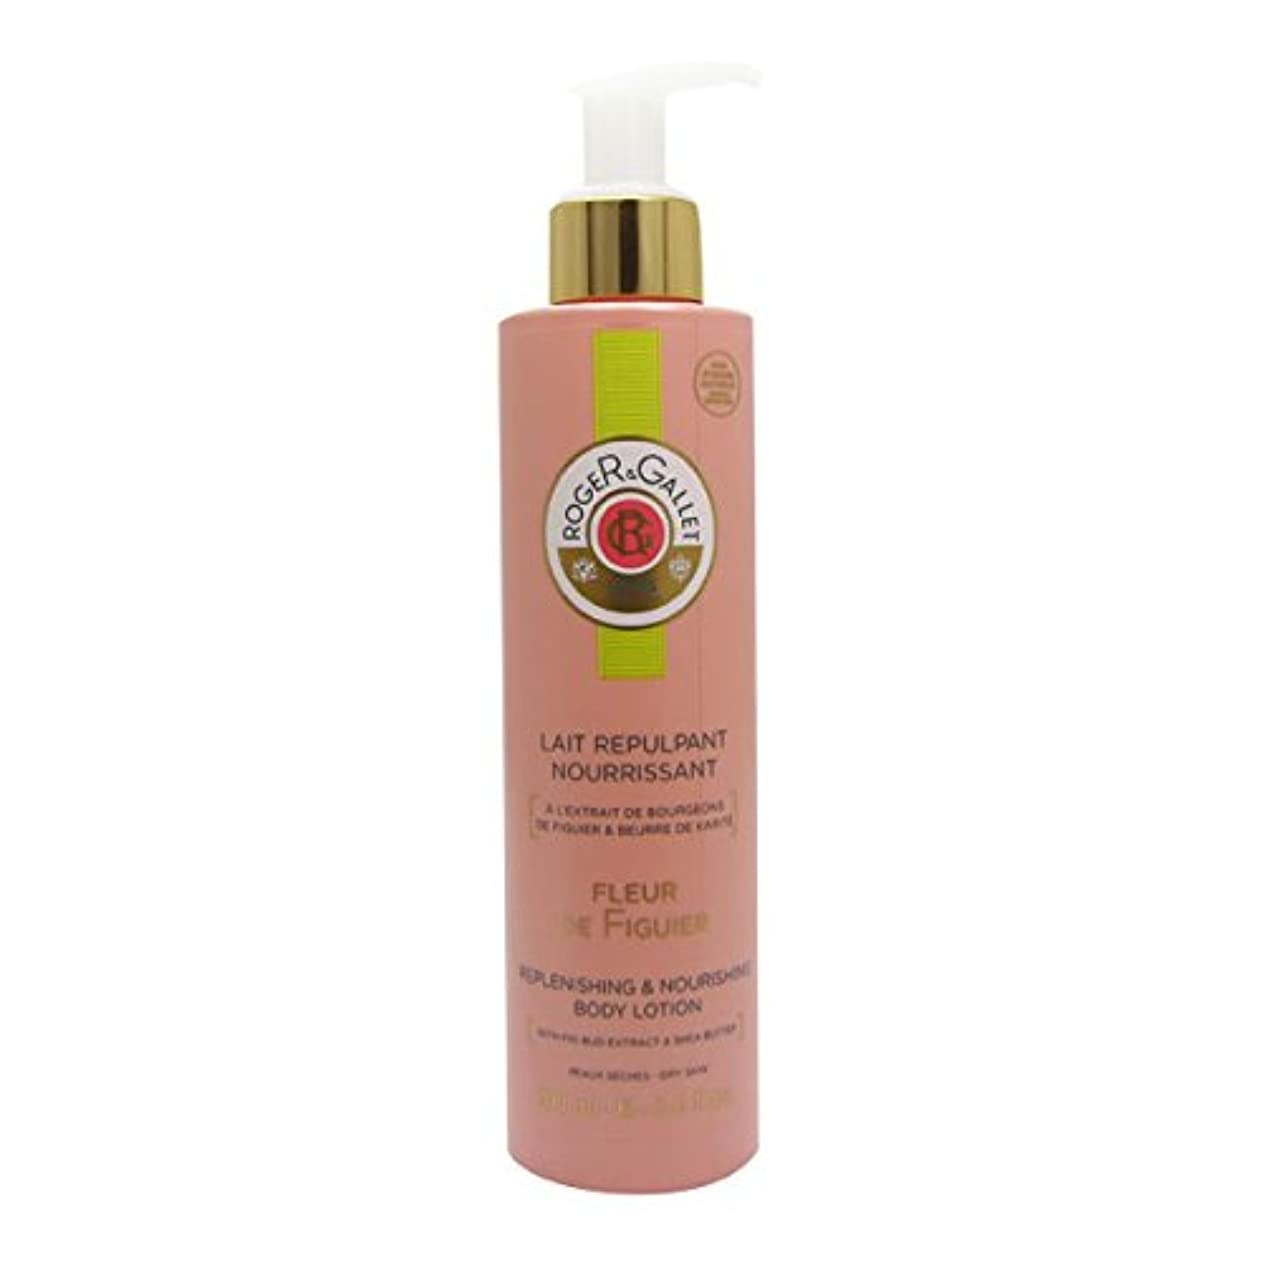 増強うそつき病気Roger Gallet Fleur De Figuier Replenishing And Nourishing Body Lotion 200ml [並行輸入品]